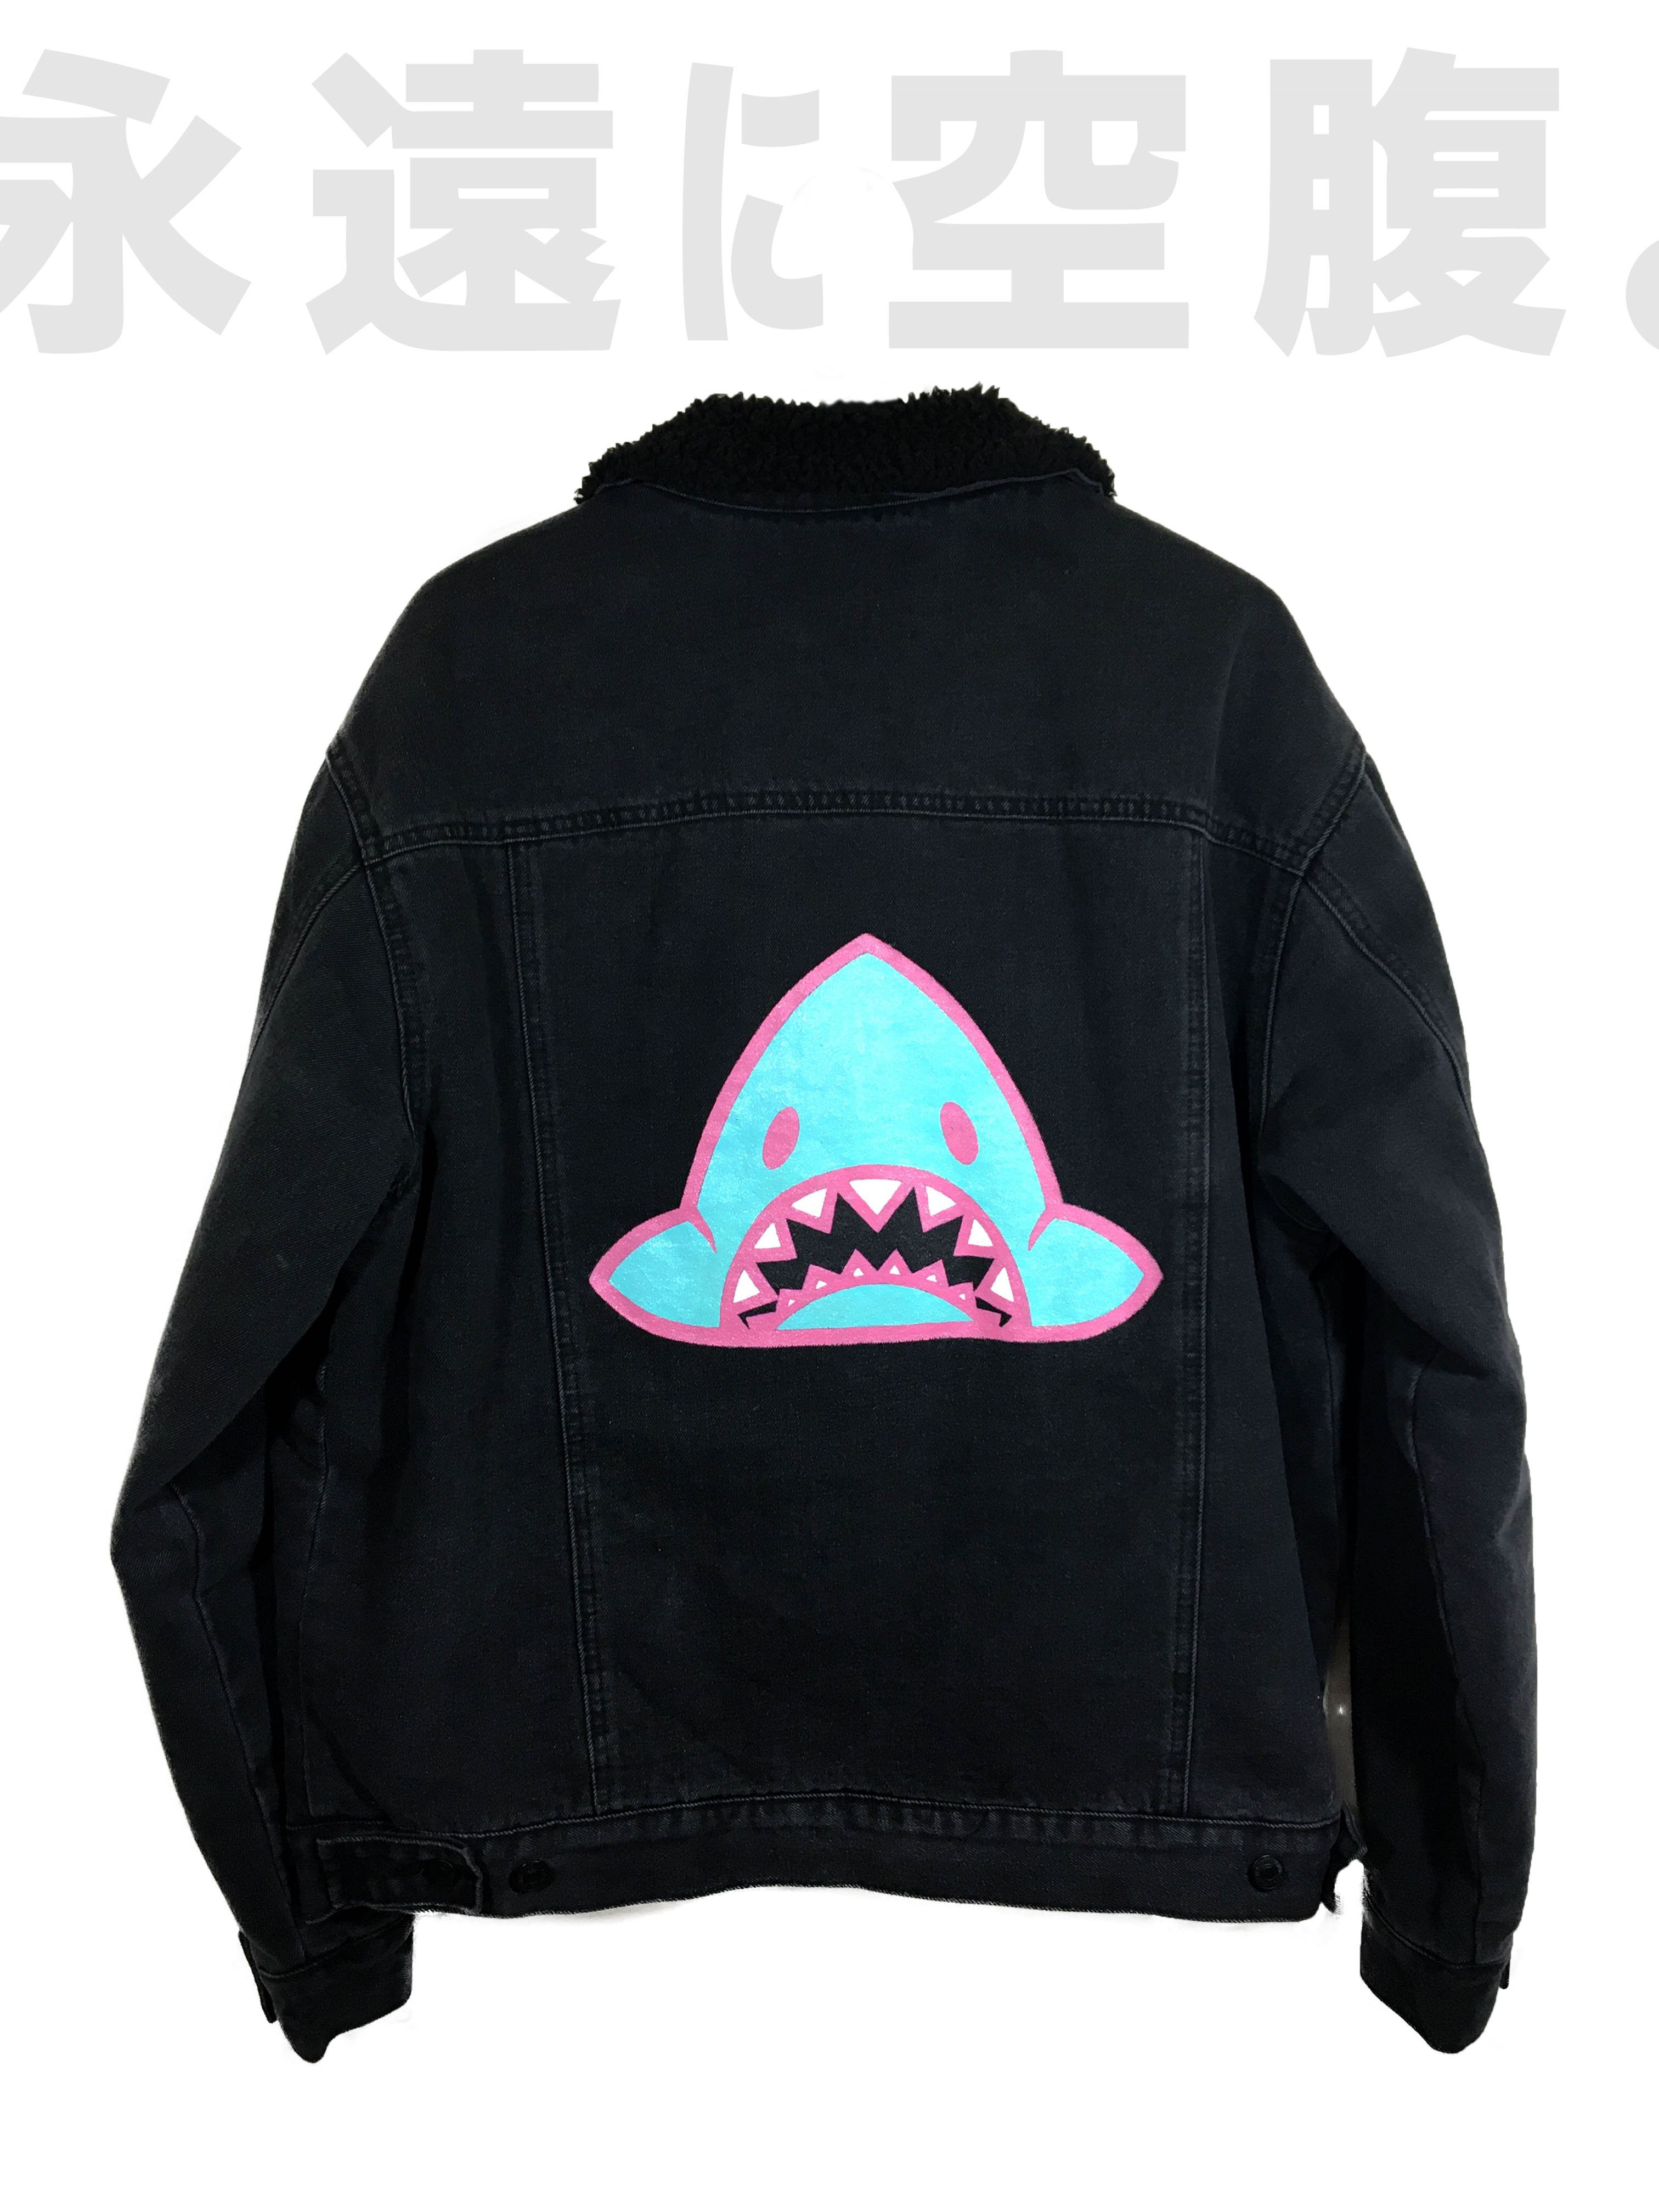 SHARKIE JEAN JACKET